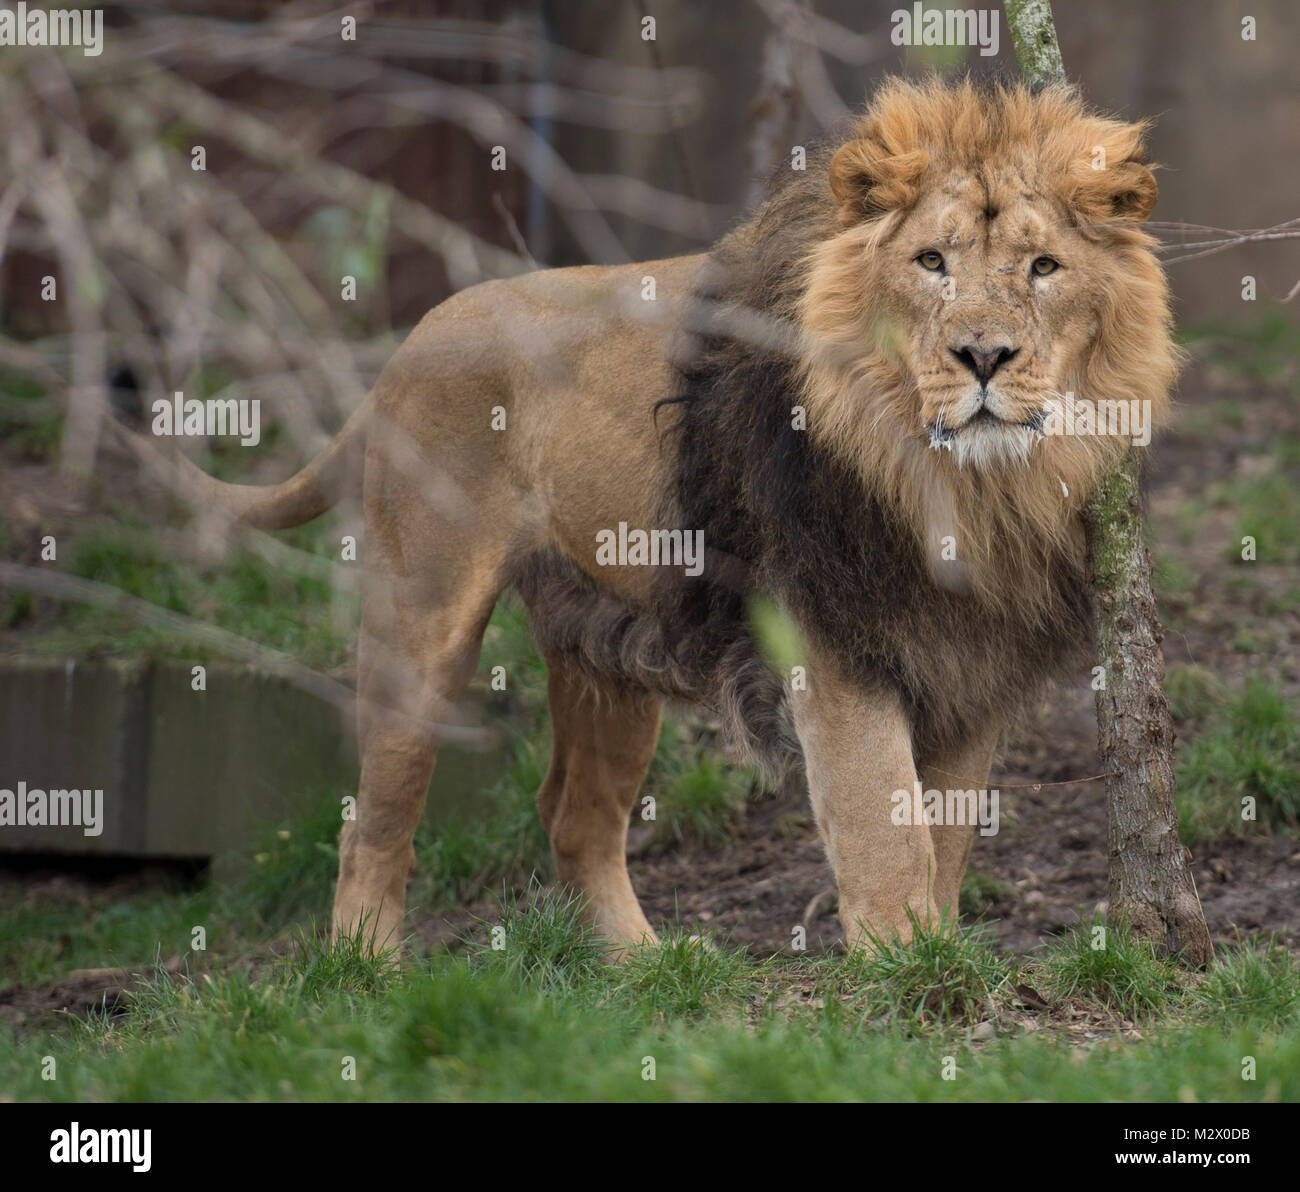 ZSL London Zoo, Regent's Park, London. 7 Feb 2018. The Asiatic Lions are counted at the Zoo's annual stocktake. - Stock Image